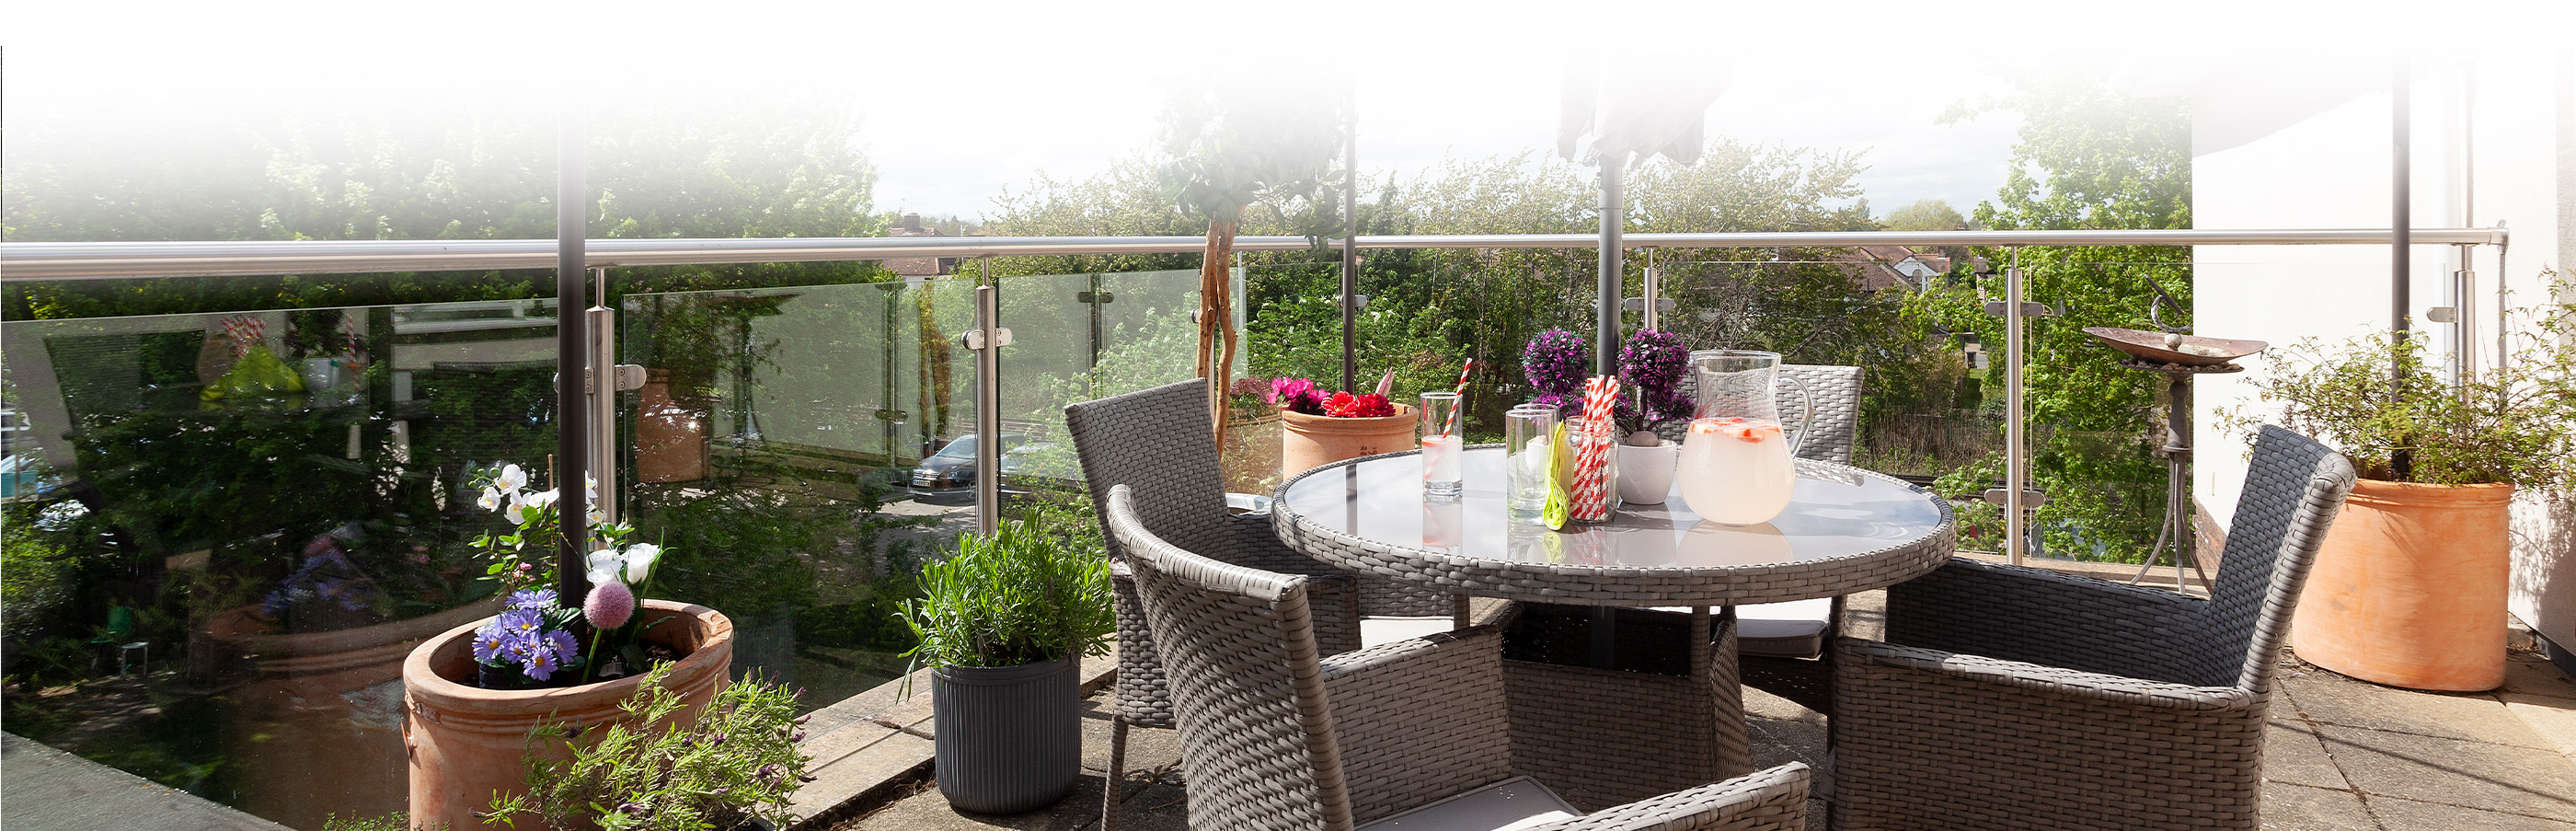 Outdoor dining table with drinks and nice view at Priory Court Care Home Epsom